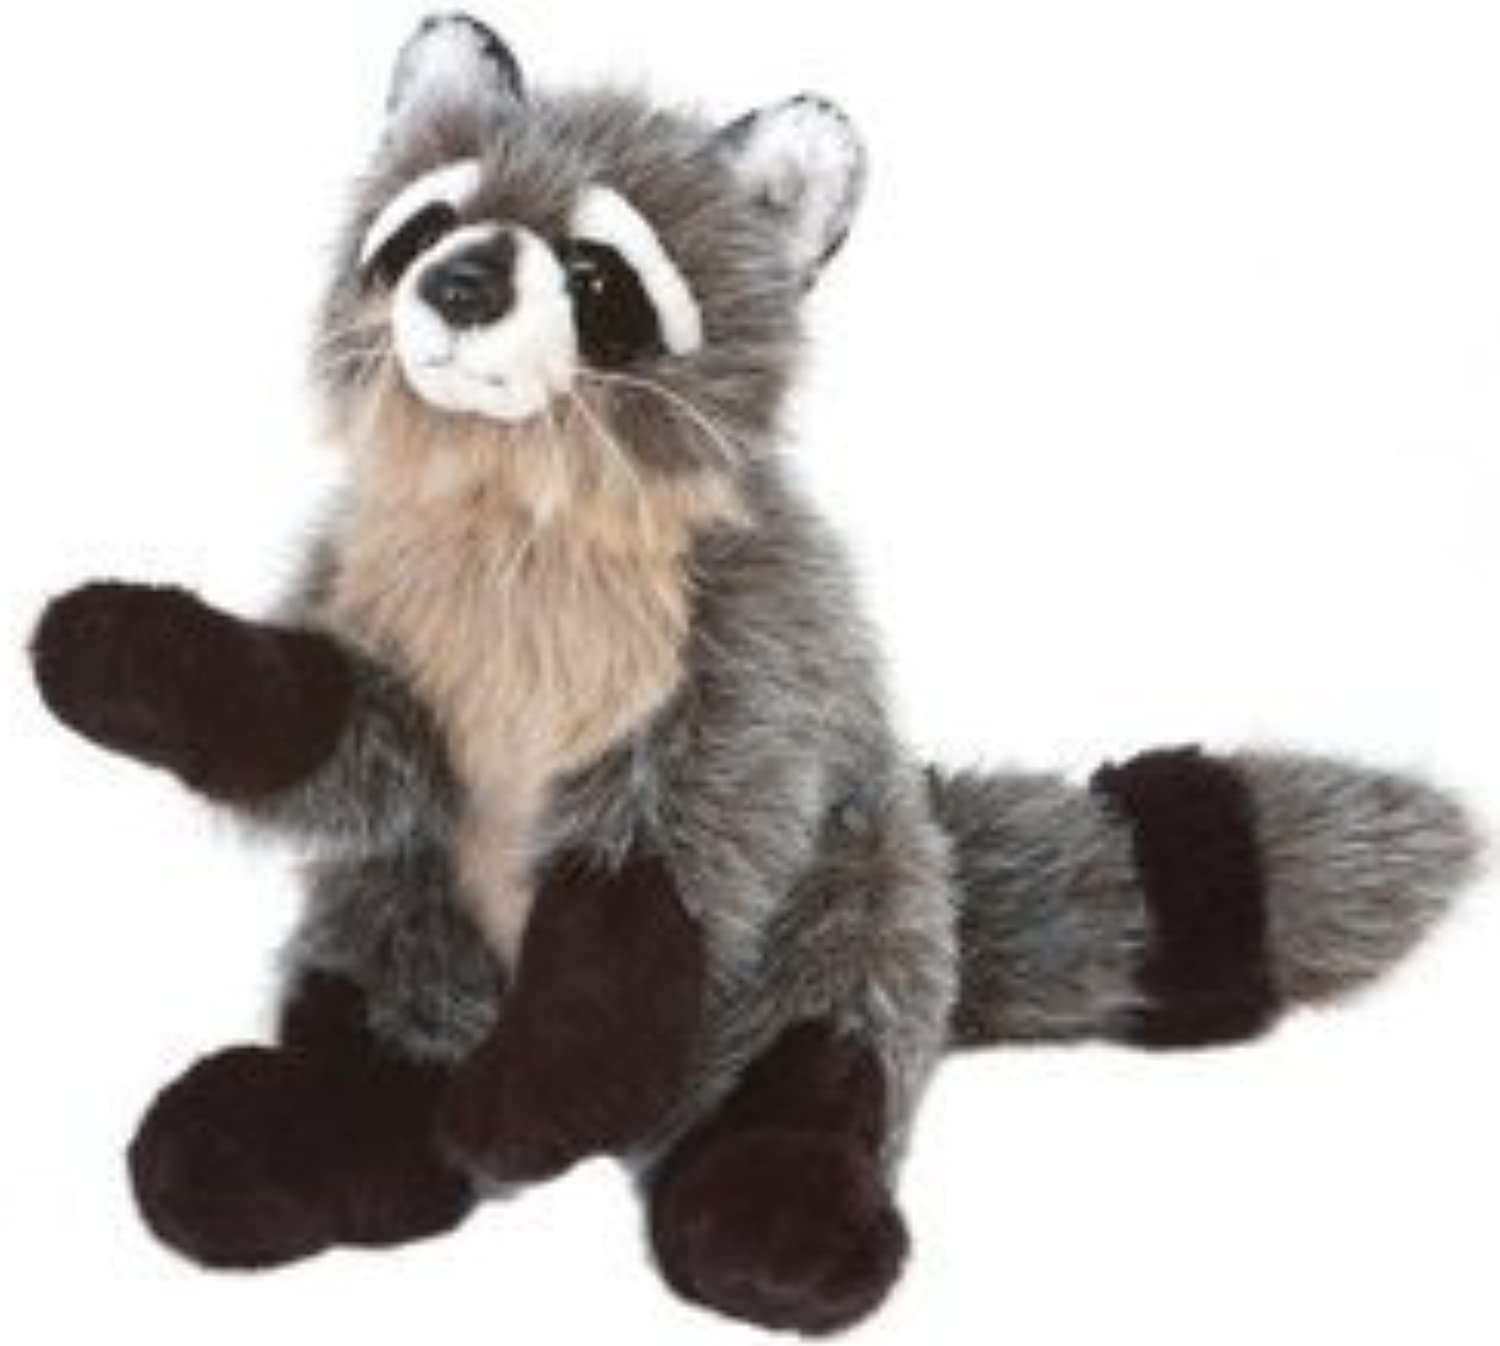 el mas de moda 12 Sitting Raccoon Raccoon Raccoon Plush Stuffed Animal Juguete by Fiesta Juguetes by Fiesta Juguetes  entrega rápida